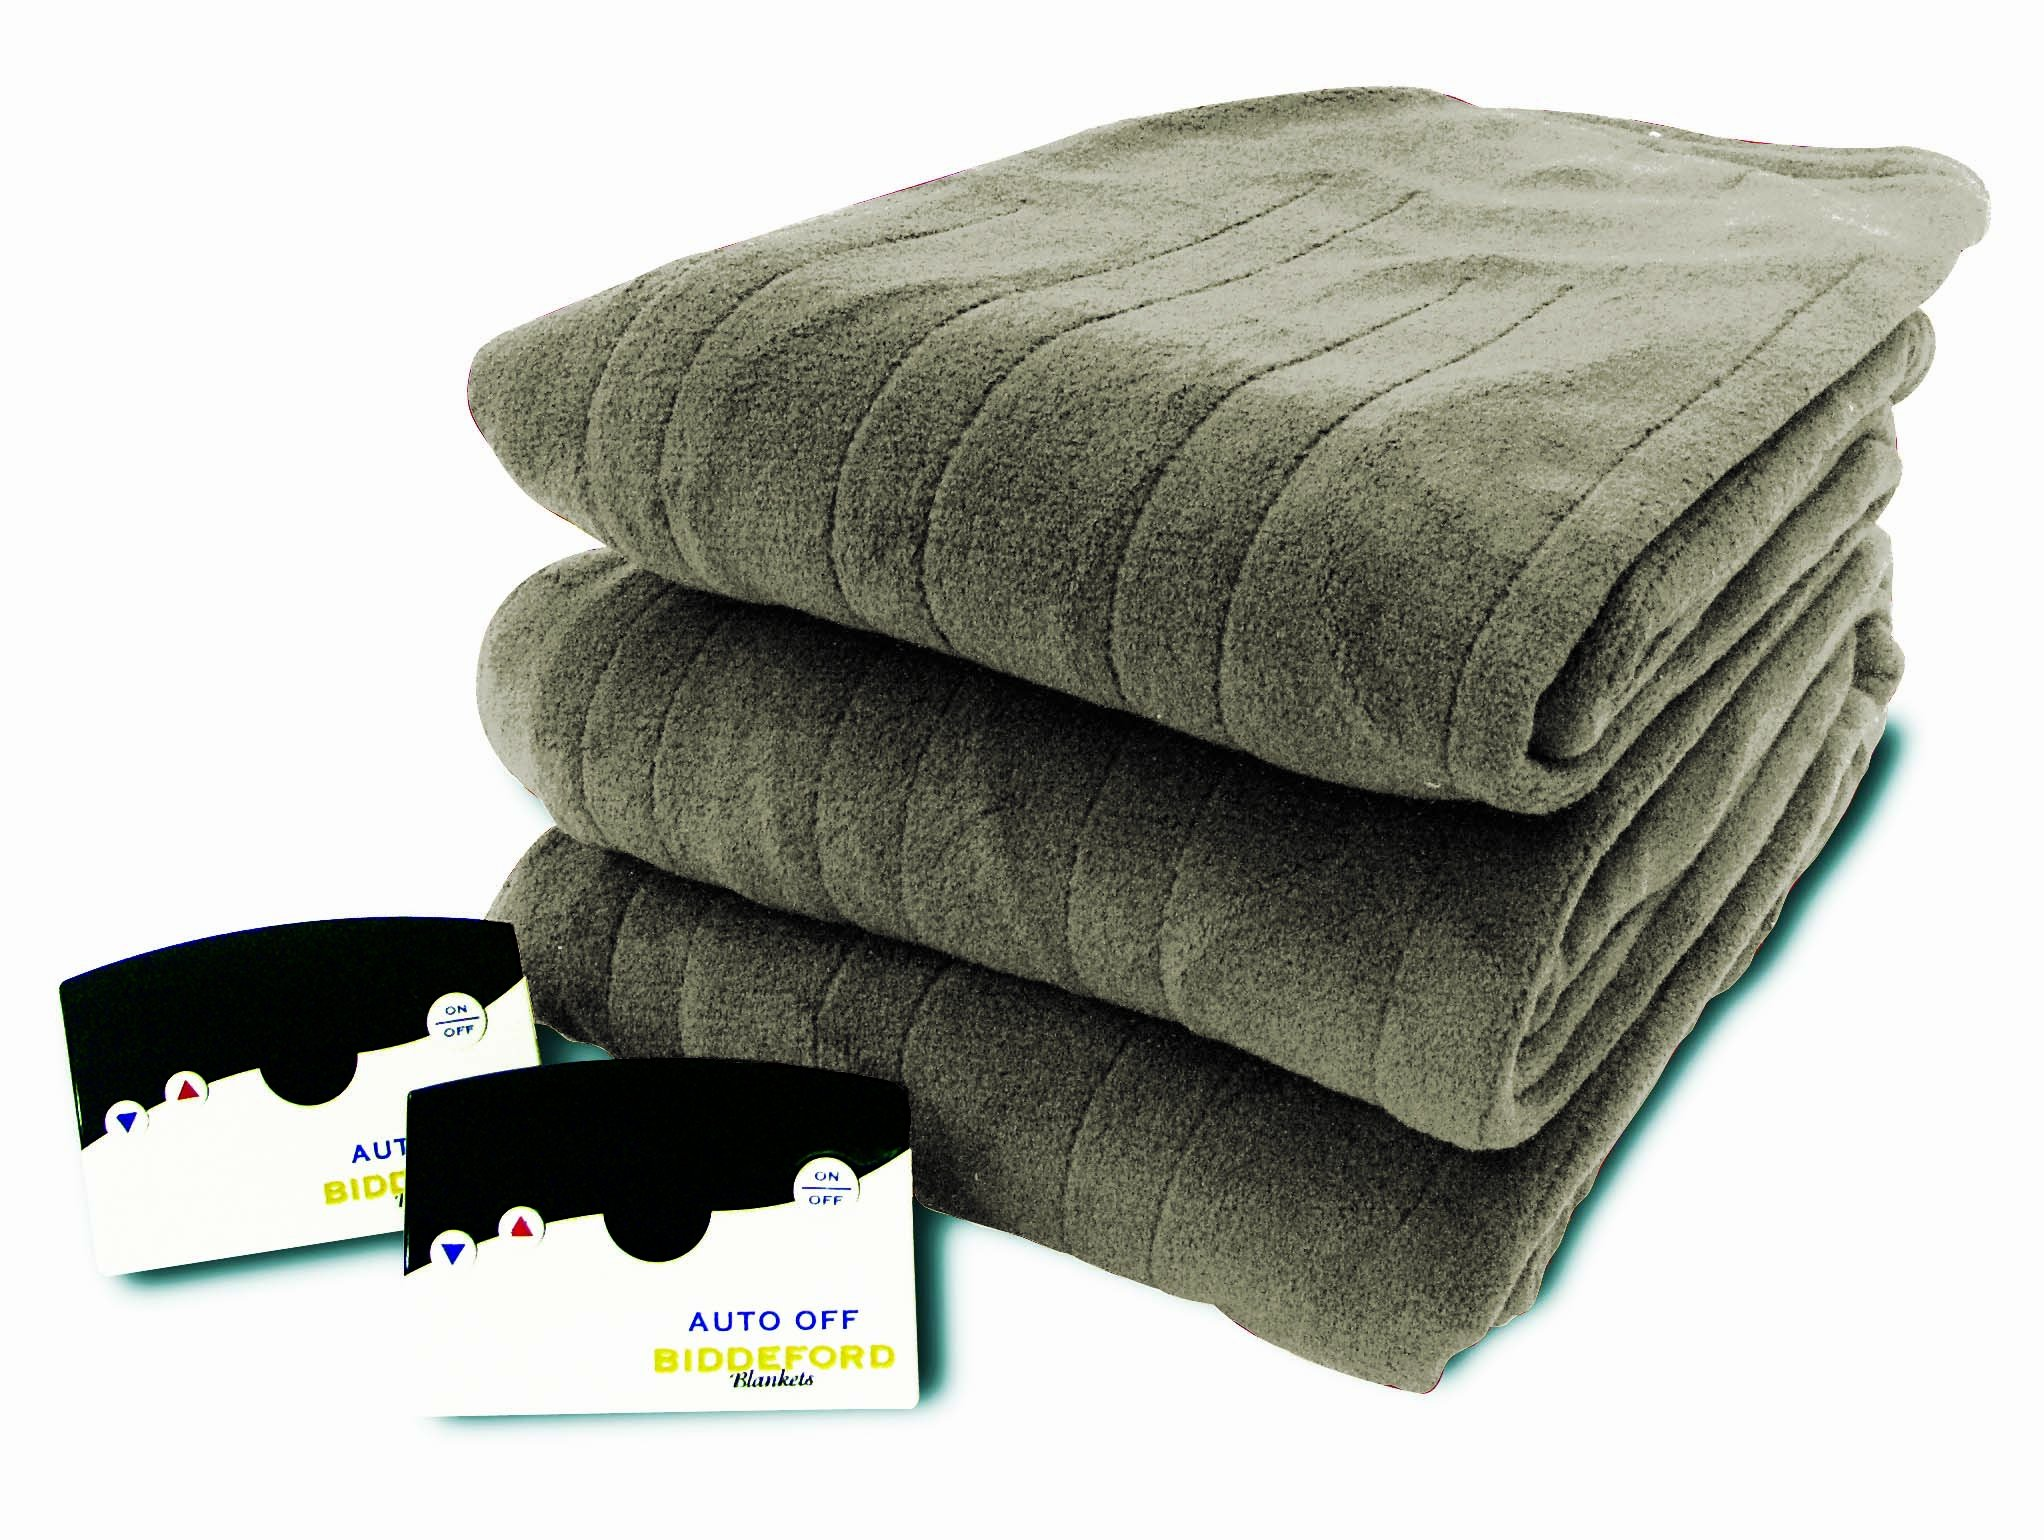 Biddeford 2023-905291-633 Electric Heated Knit MicroPlush Blanket, Queen, Sage by Biddeford